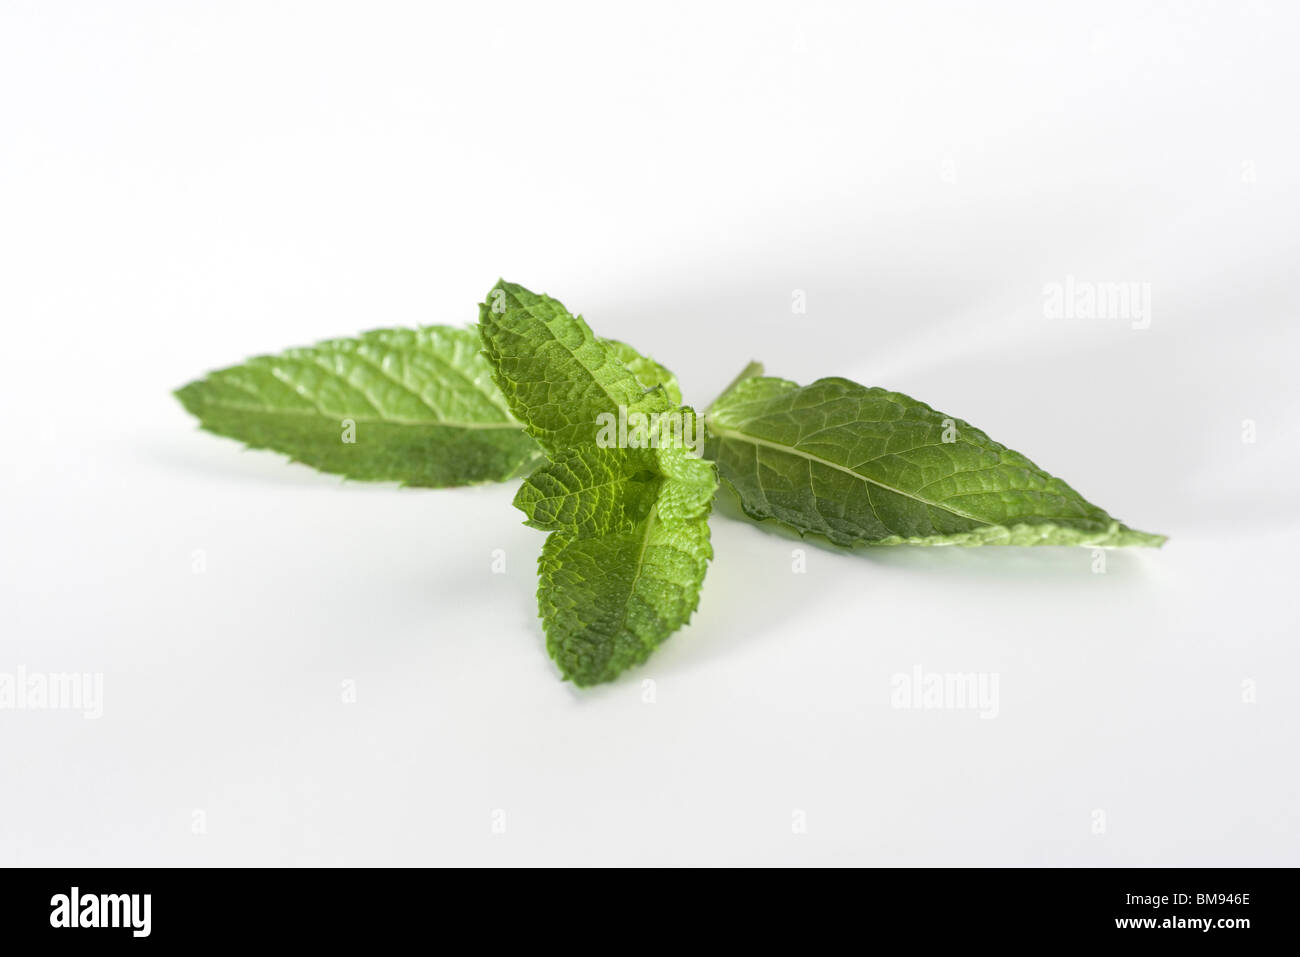 Mint sprig - Stock Image